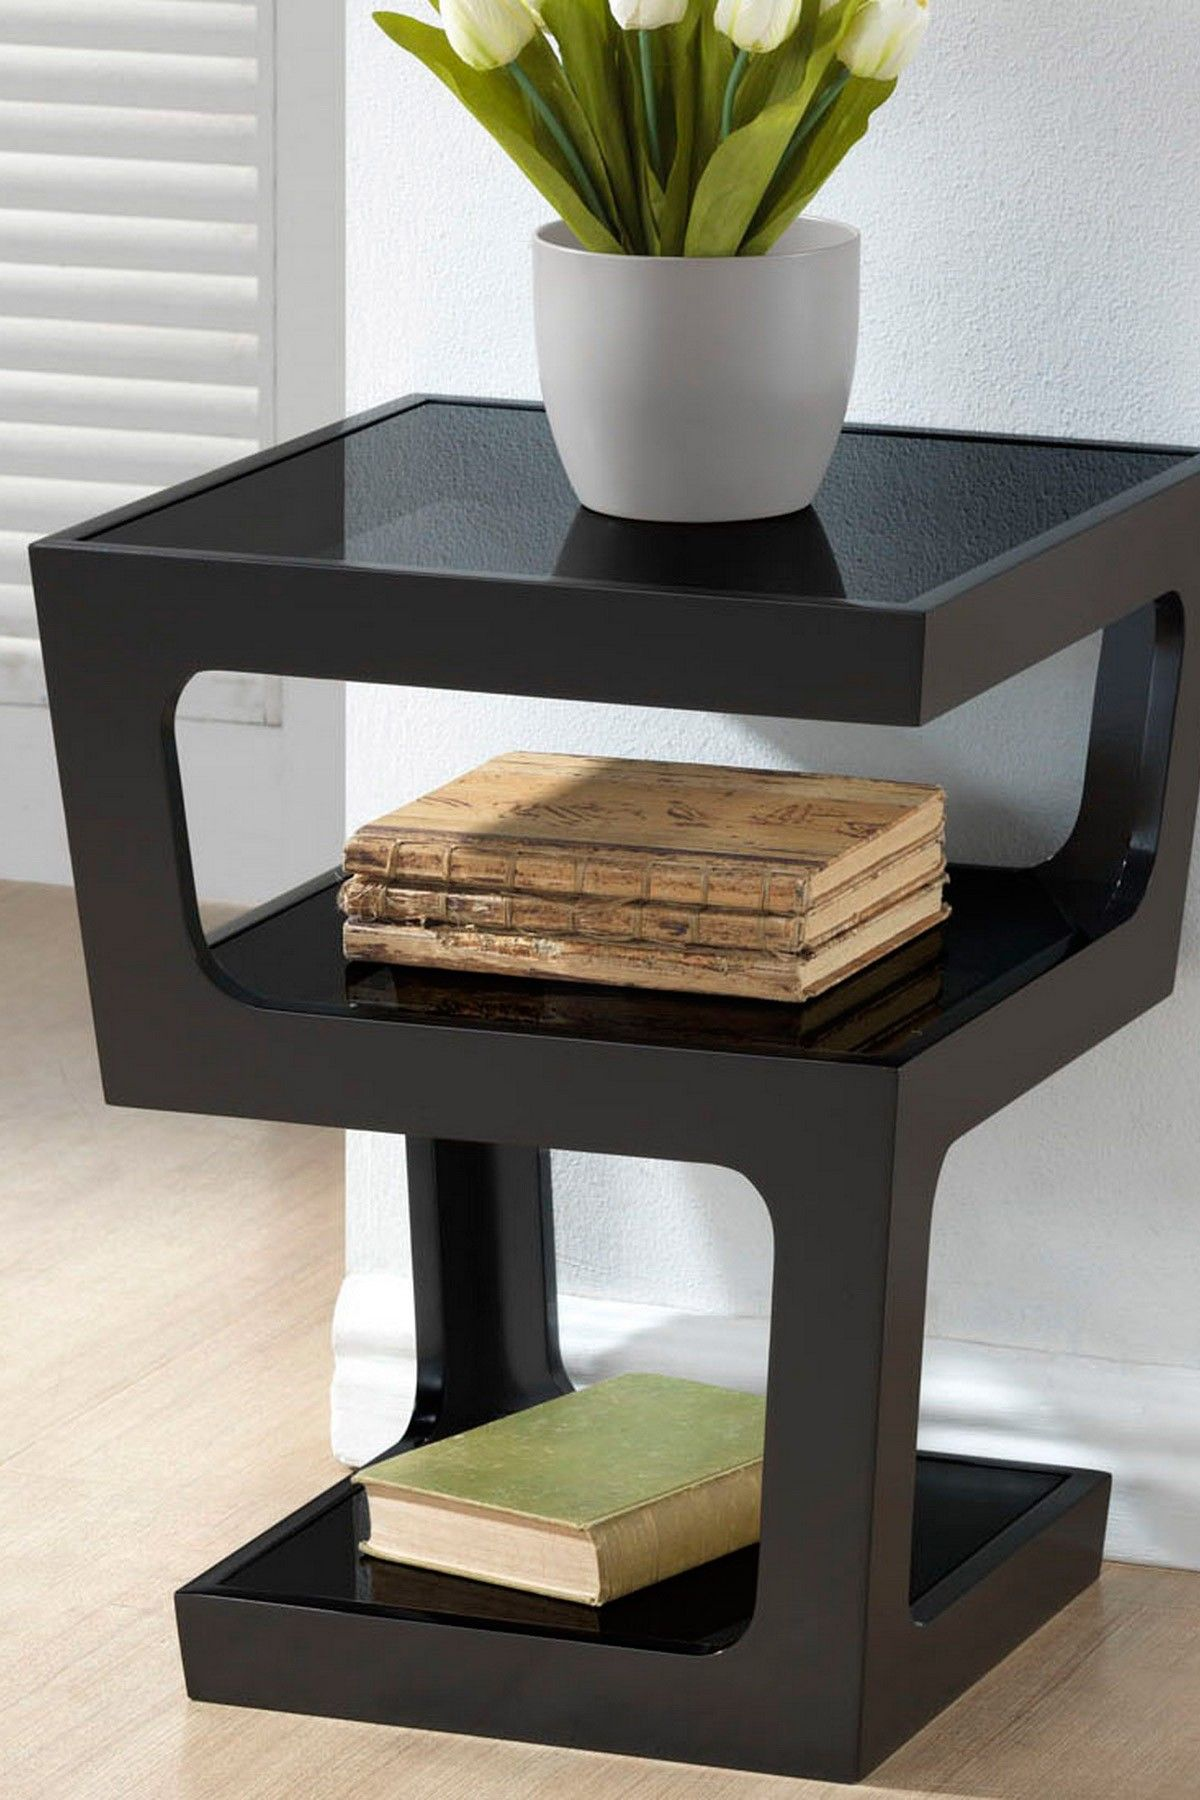 Clara Black Modern End Table With 3 Tiered Glass Shelves On HauteLook $169